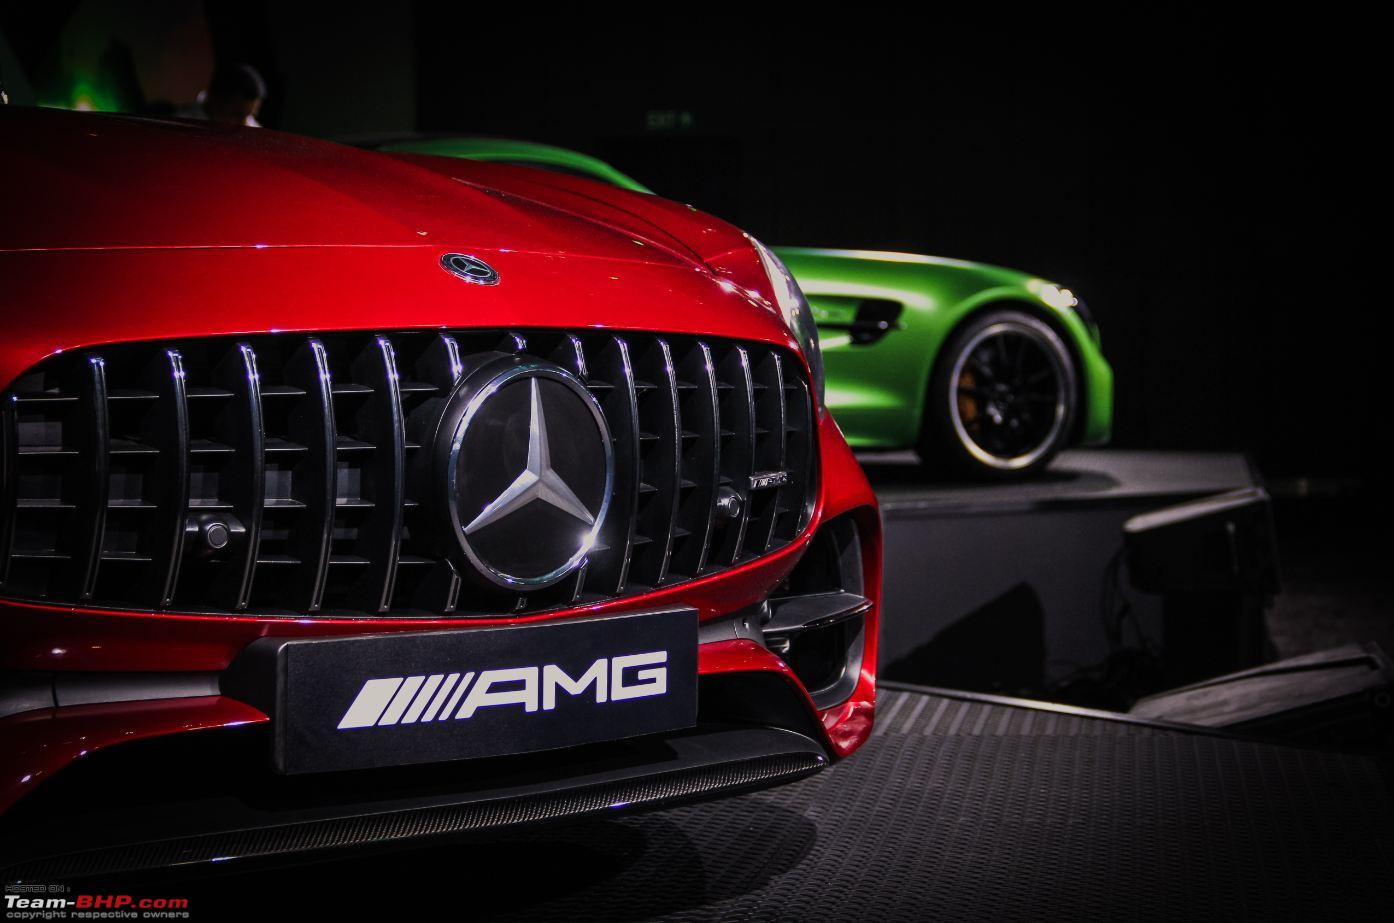 Mercedes Amg Gt R Amg Gt Roadster Launched In India Team Bhp